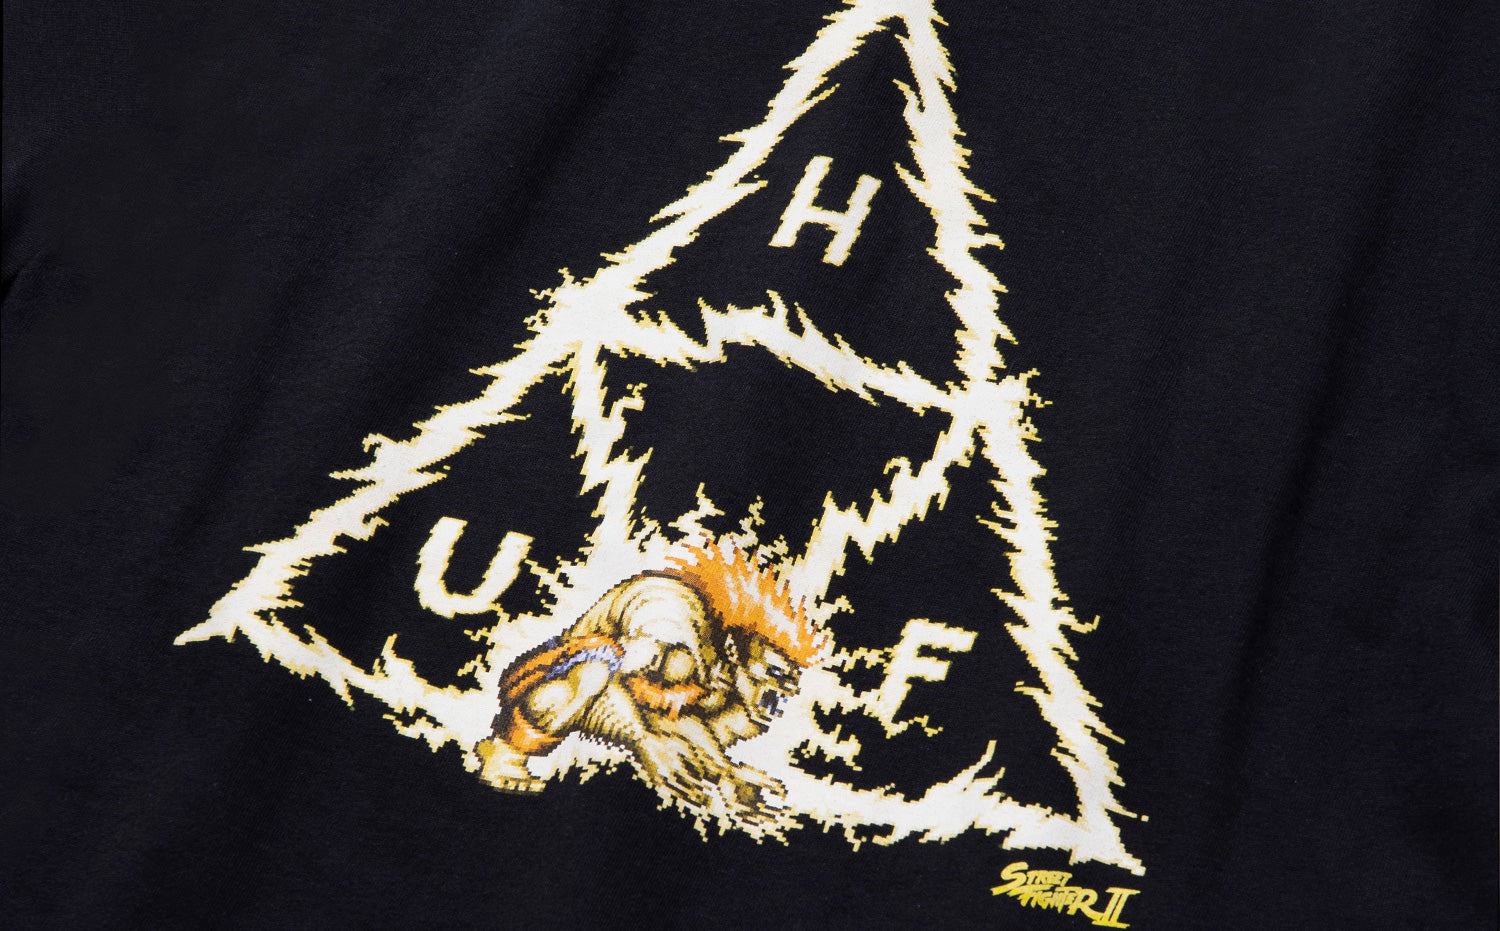 Shop the HUF Worldwide x Street Fighter Collaboration at Fallen Front